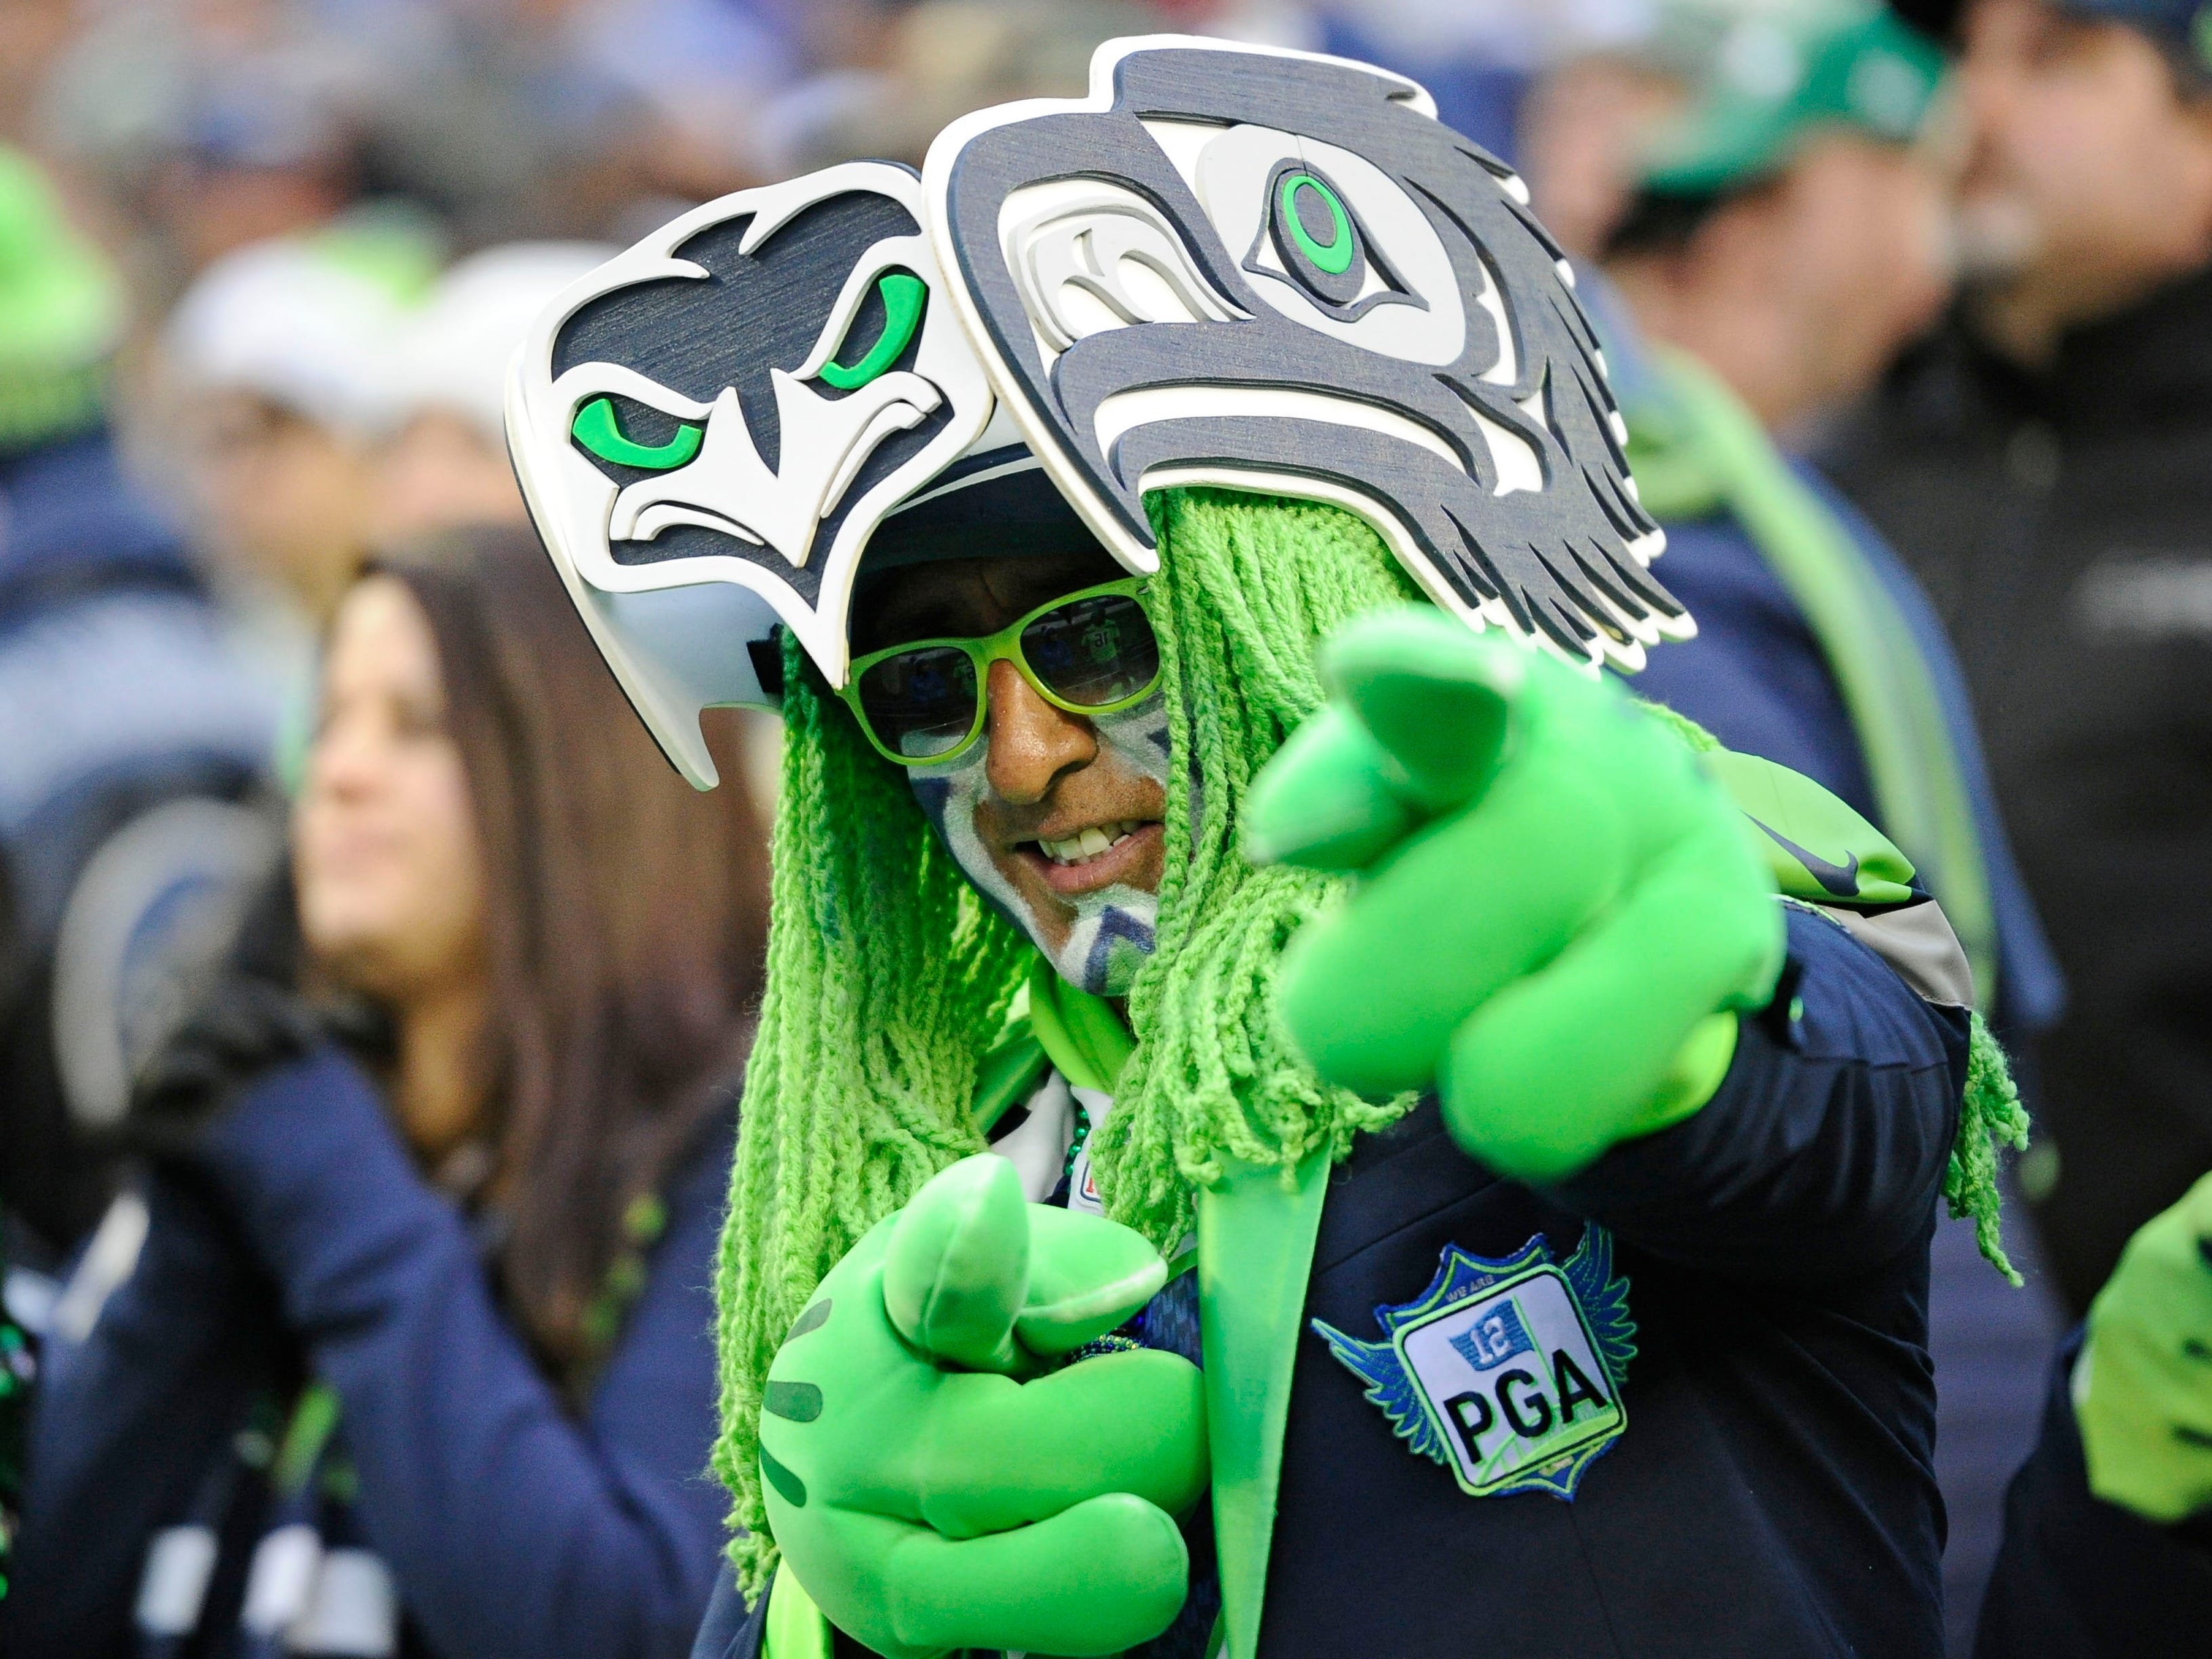 Seattle Seahawks fans looks on during a football game against the San Francisco 49ers in the second half at CenturyLink Field.